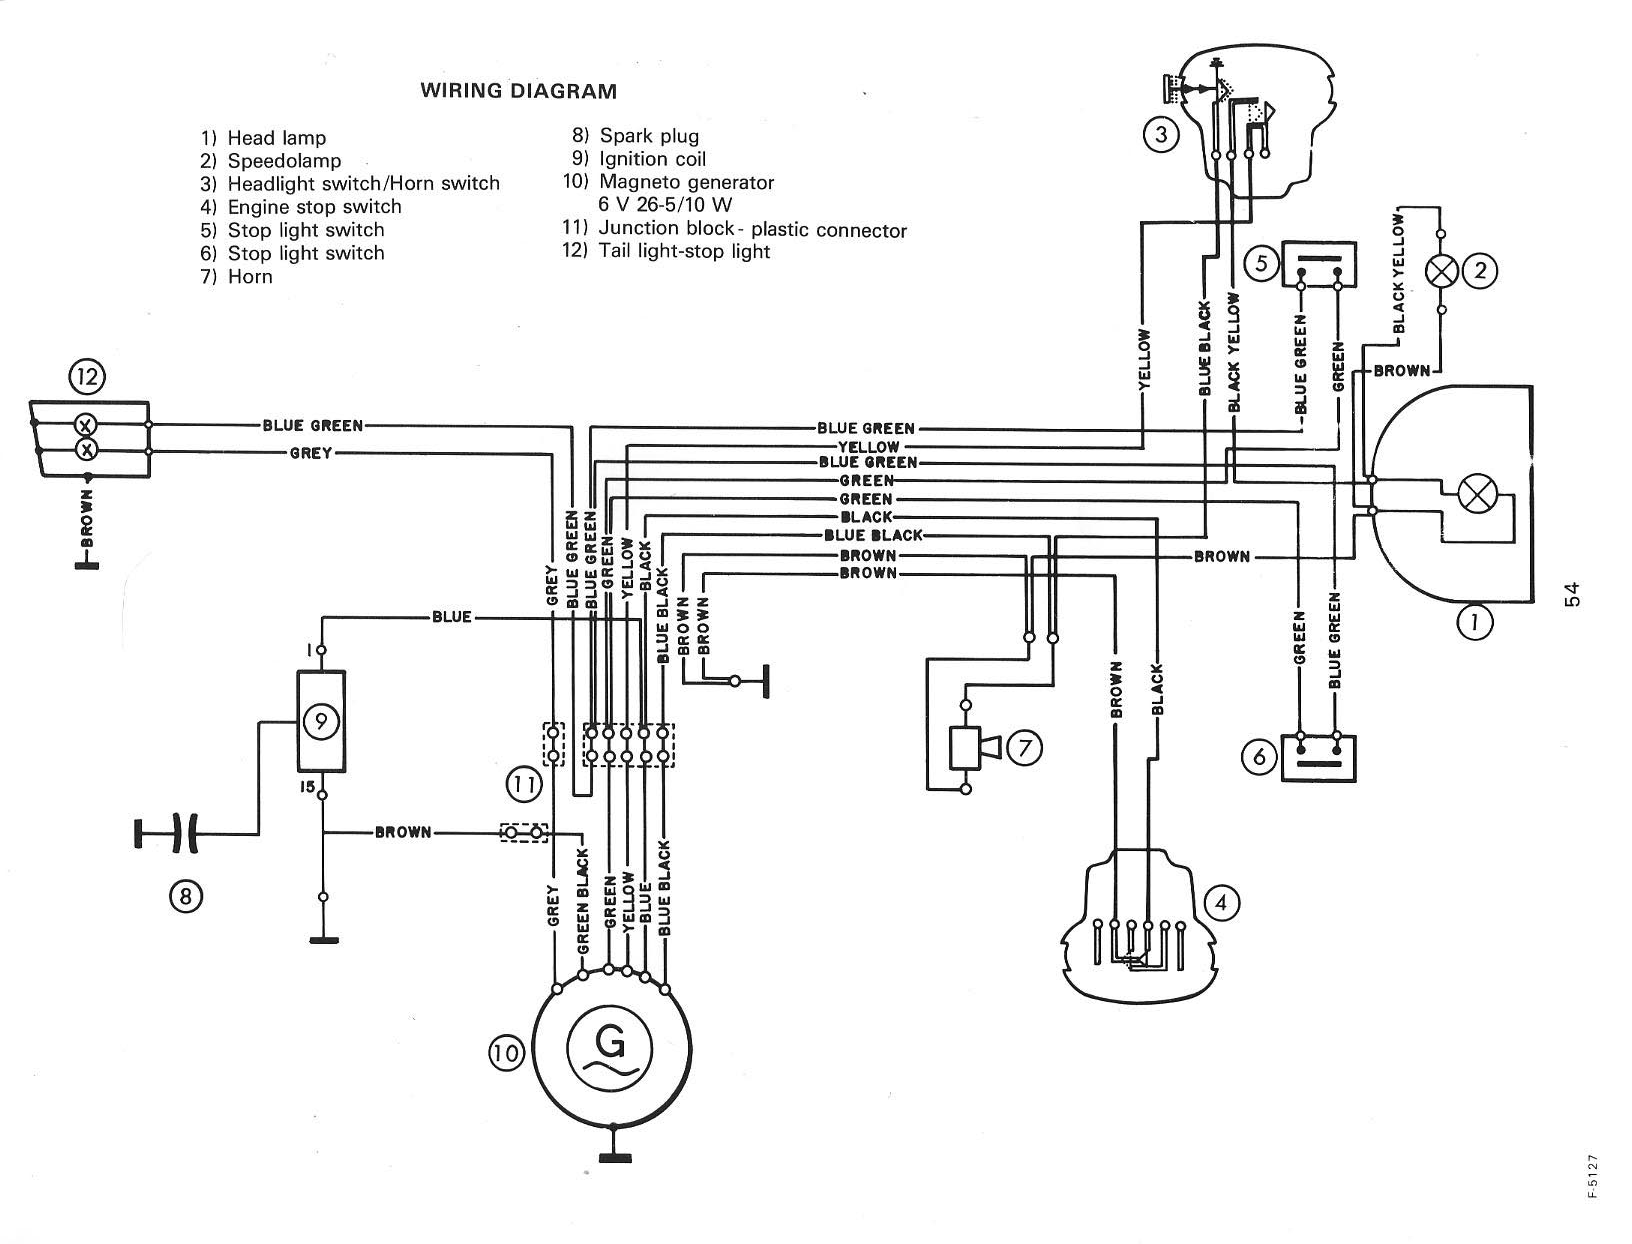 hight resolution of 1977 tomos a3sp wiring diagram puch newport wiring diagram puch 1977 tomos a3sp wiring diagram